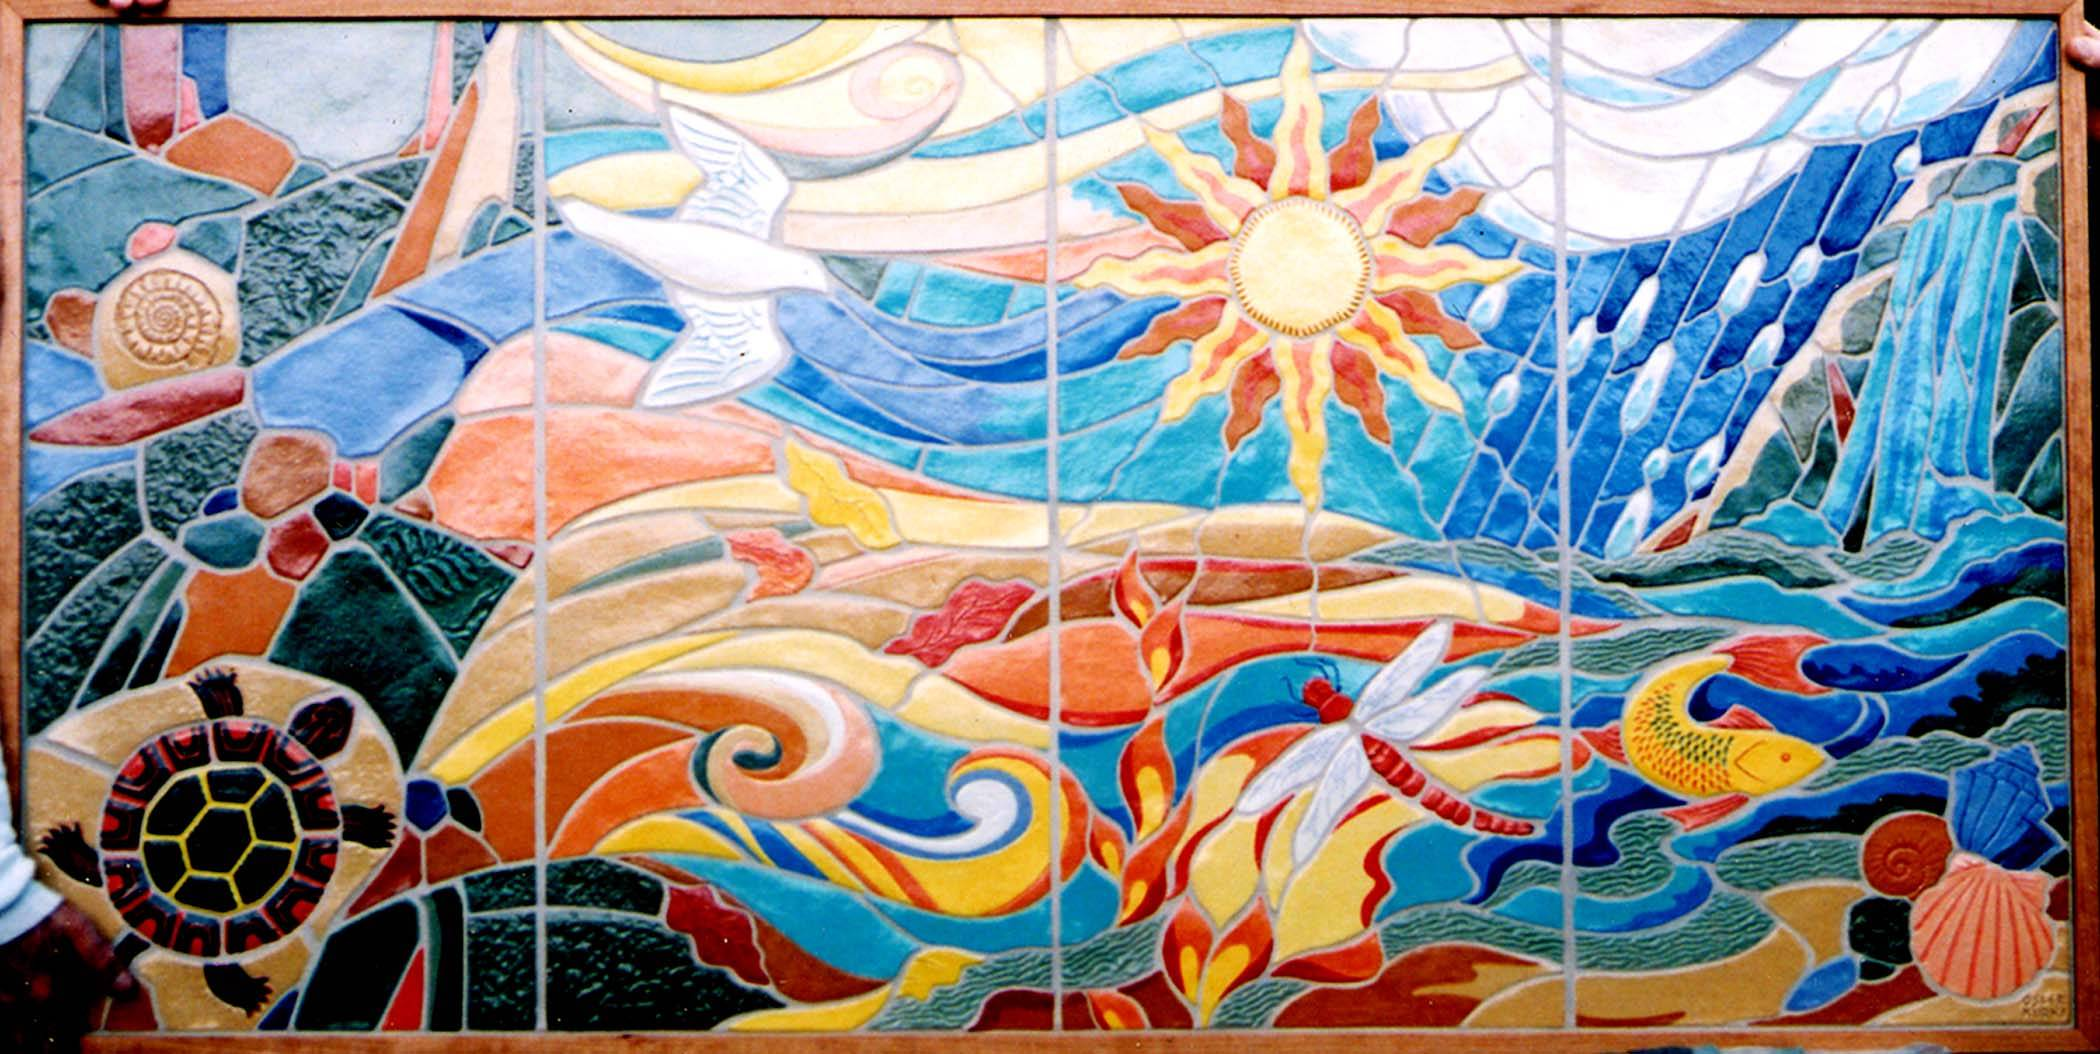 The Four Elements: Earth, Air, Fire Water